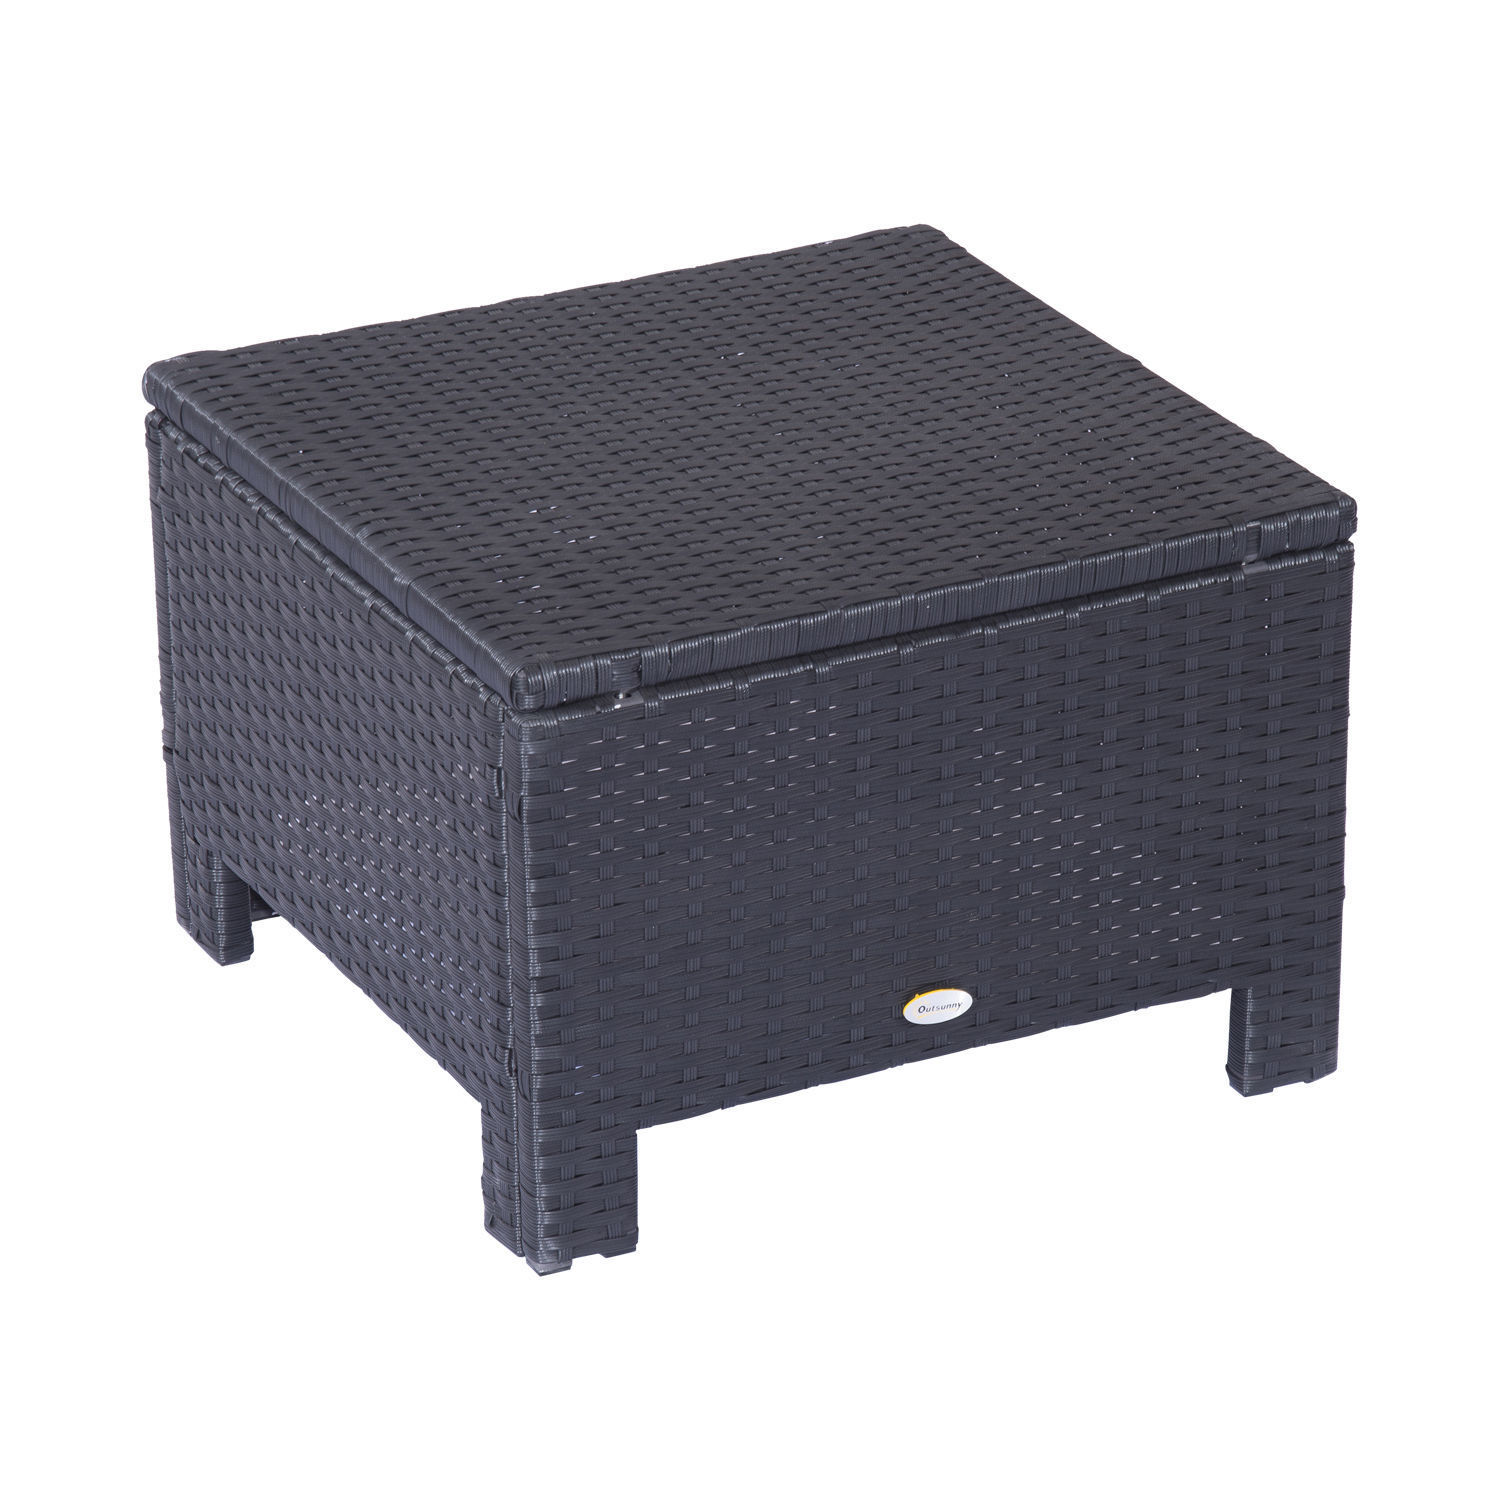 Outdoor Rattan Garden Patio Wicker Weave Furniture Table